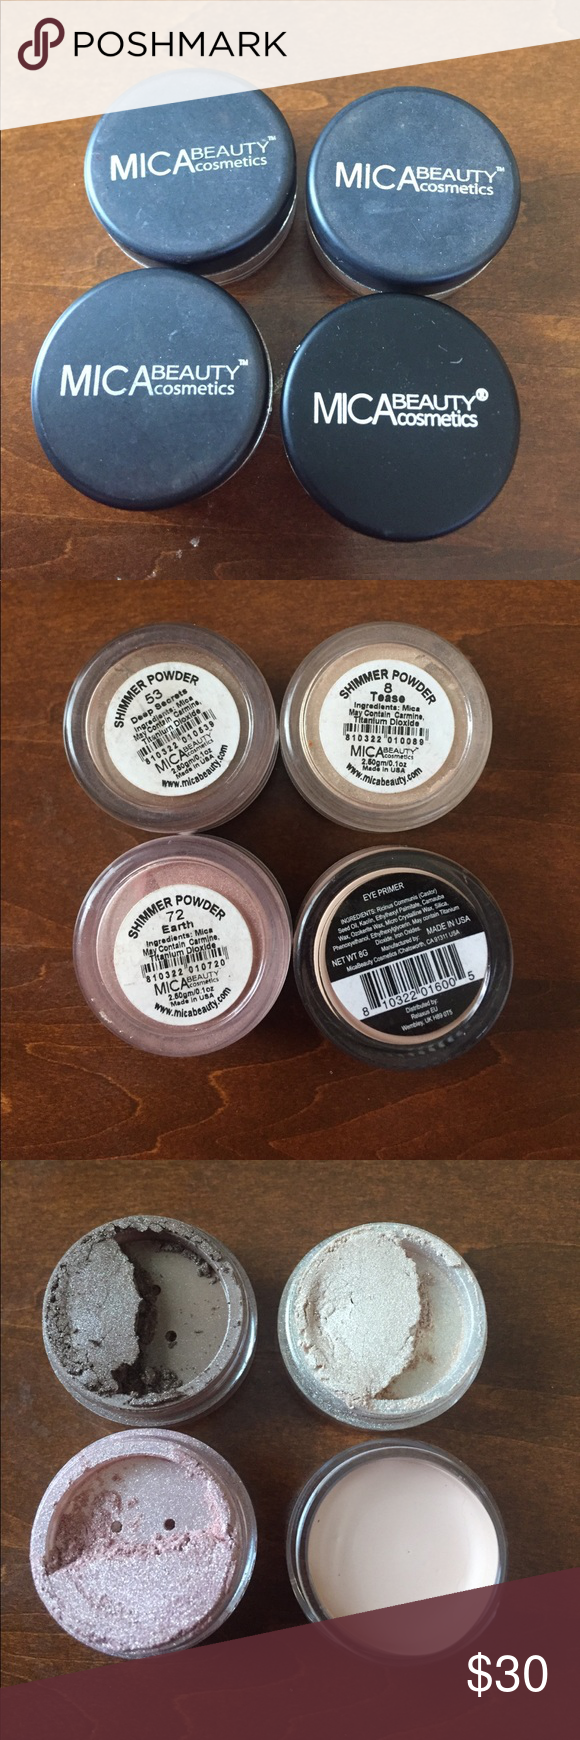 MICA Beauty Cosmetics I'm selling 3 shimmer powders in the